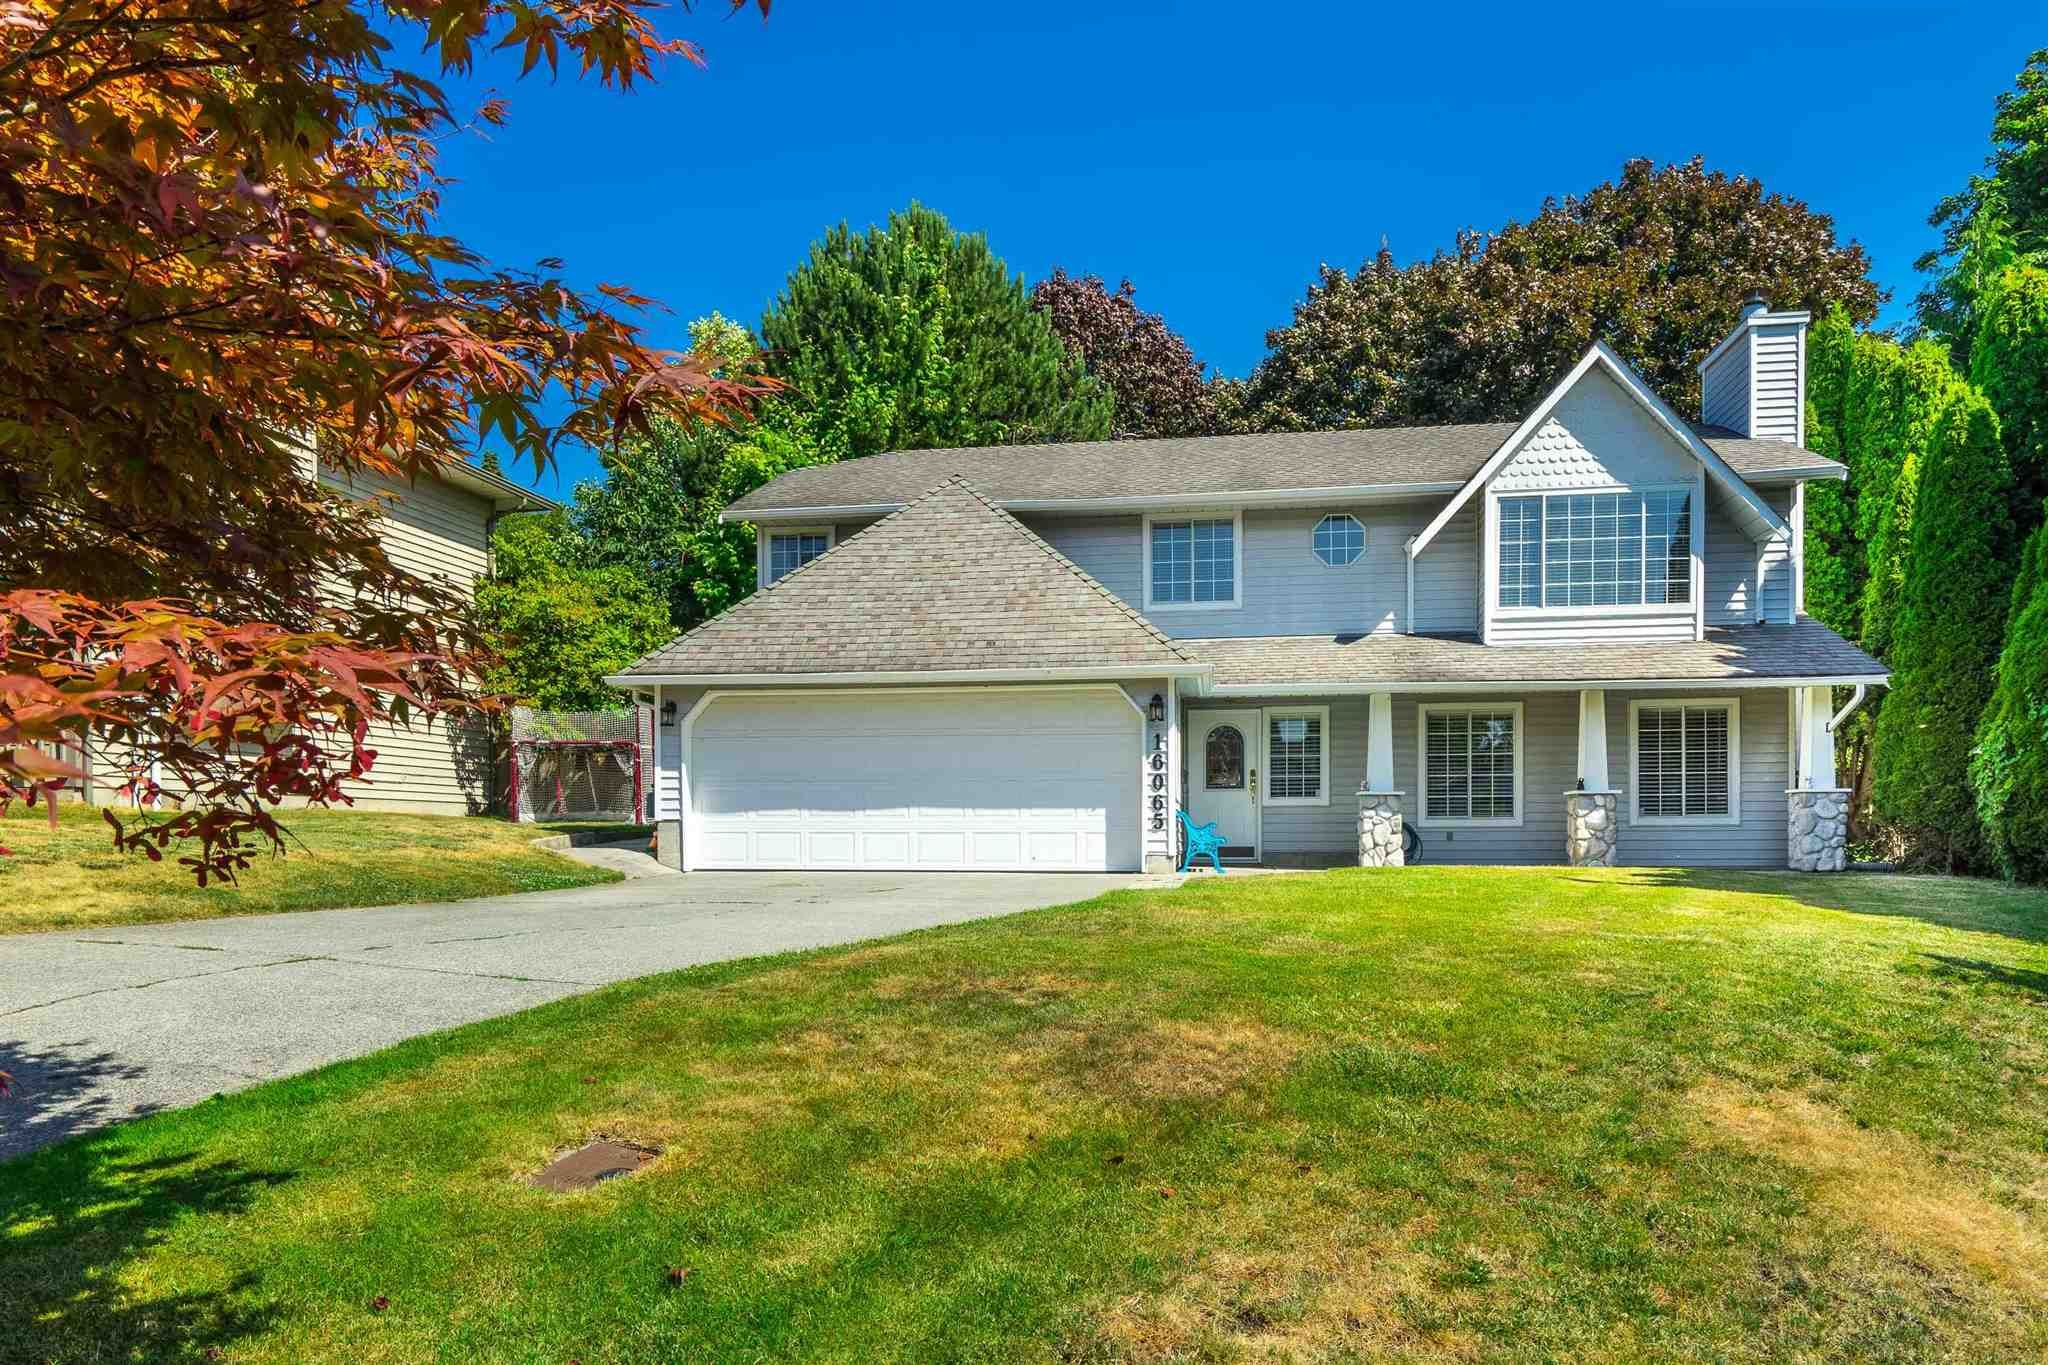 Main Photo: 16065 10A Avenue in Surrey: King George Corridor House for sale (South Surrey White Rock)  : MLS®# R2598304